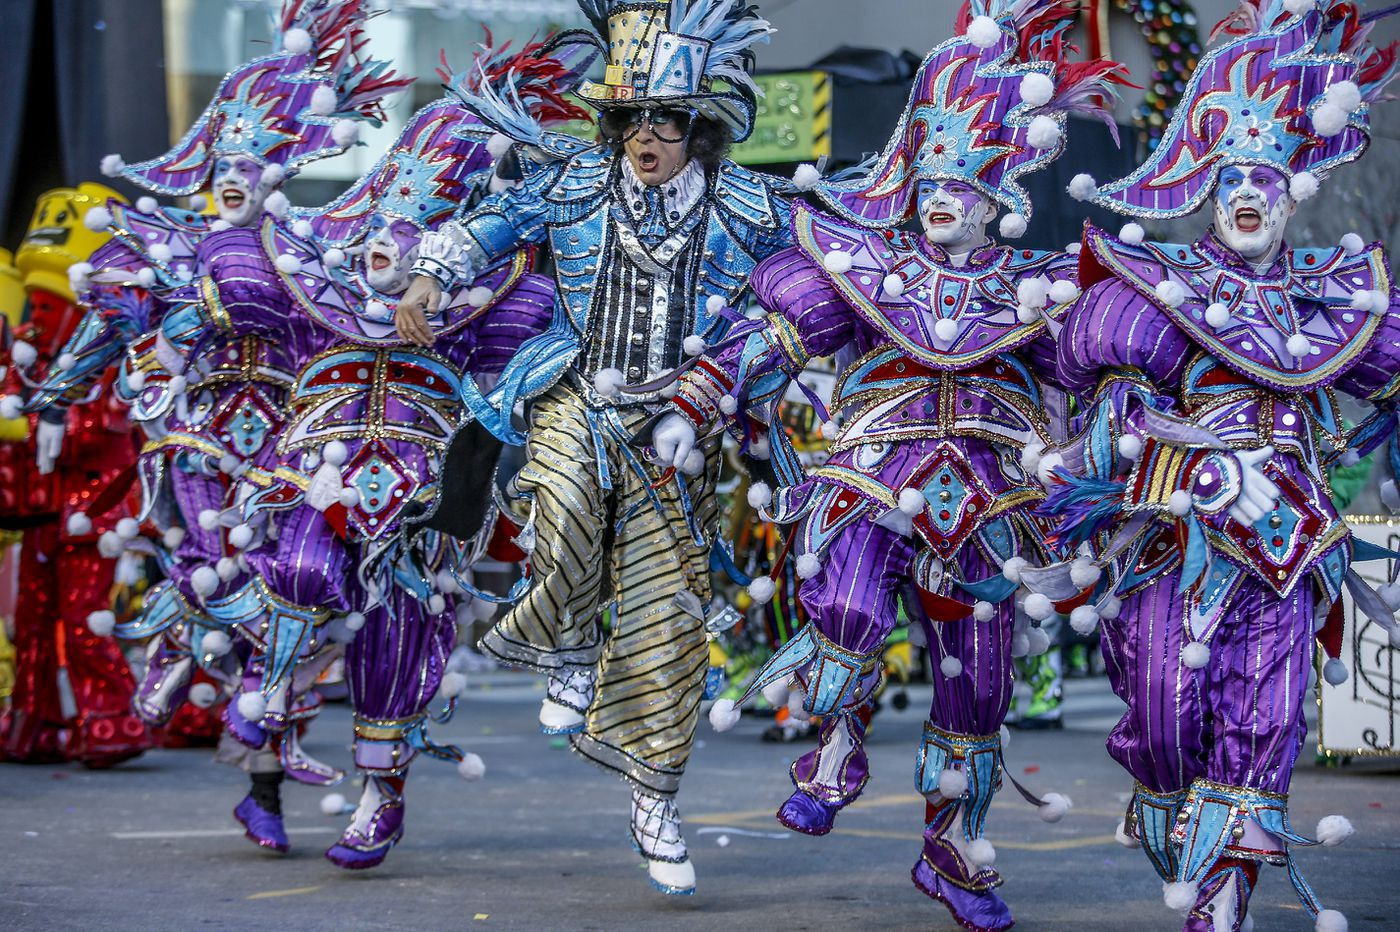 Less 'diversity' in 2019 Mummers Parade, but whose fault is that?   Stu Bykofsky